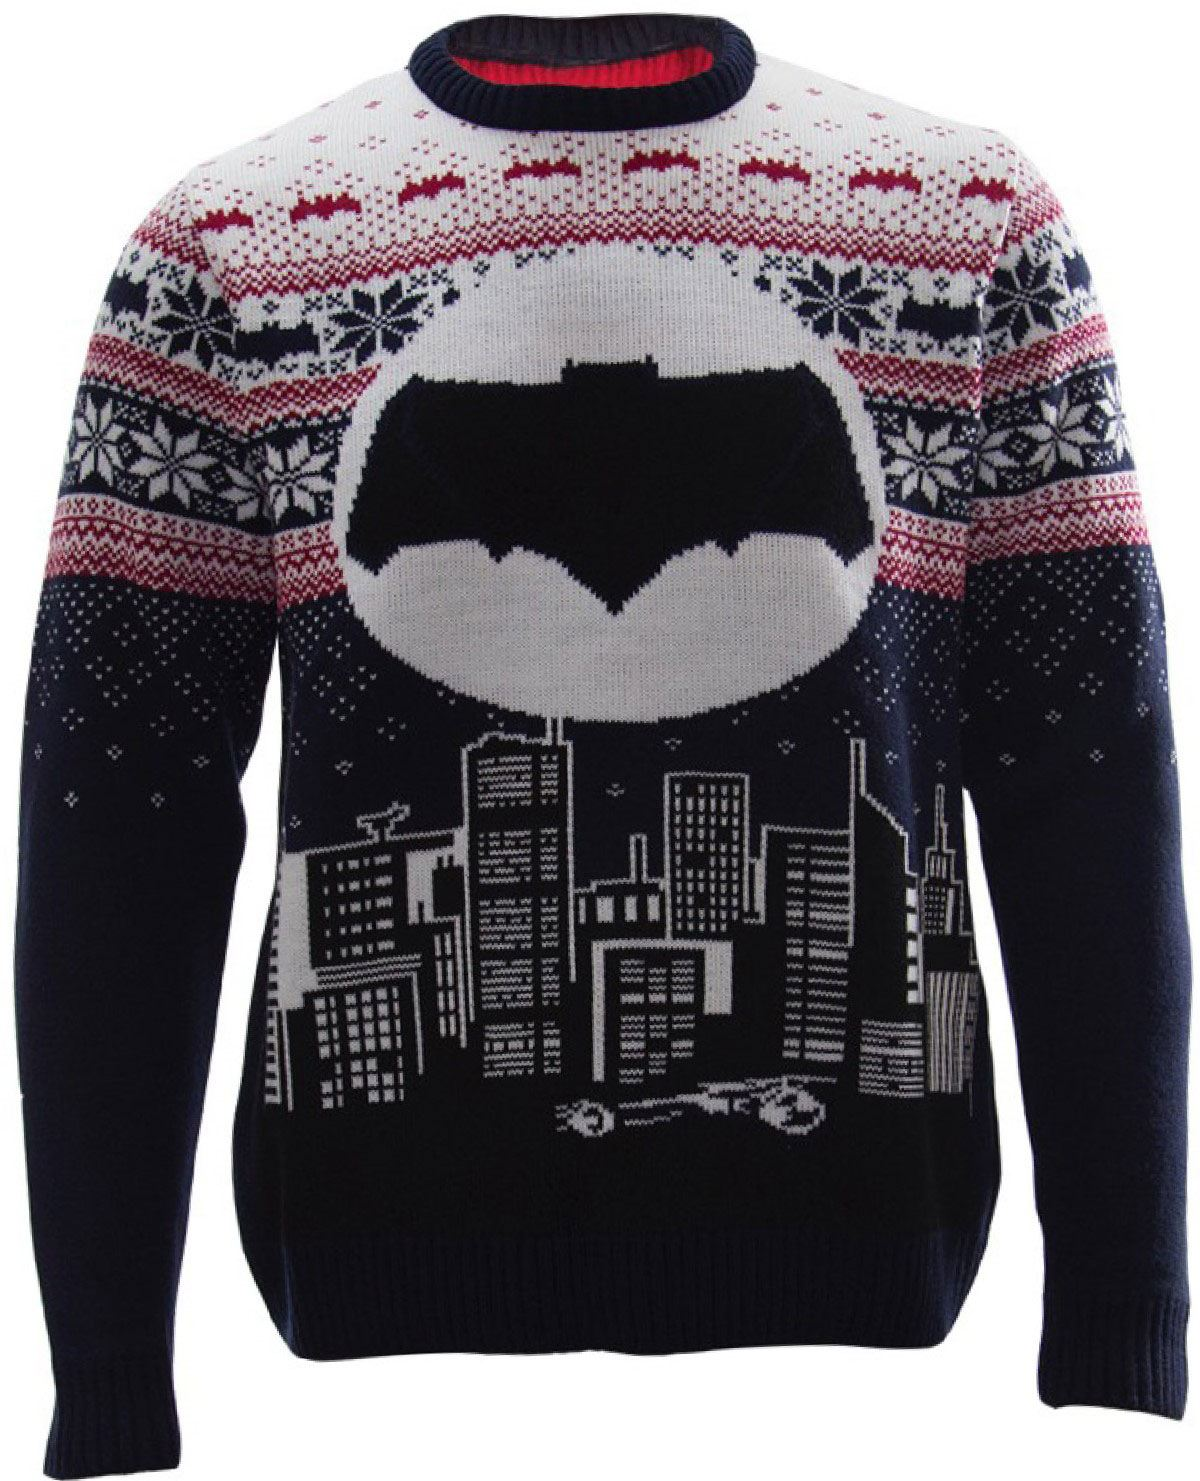 DC Comics Knitted Sweater Batman Cityscape Design Size L